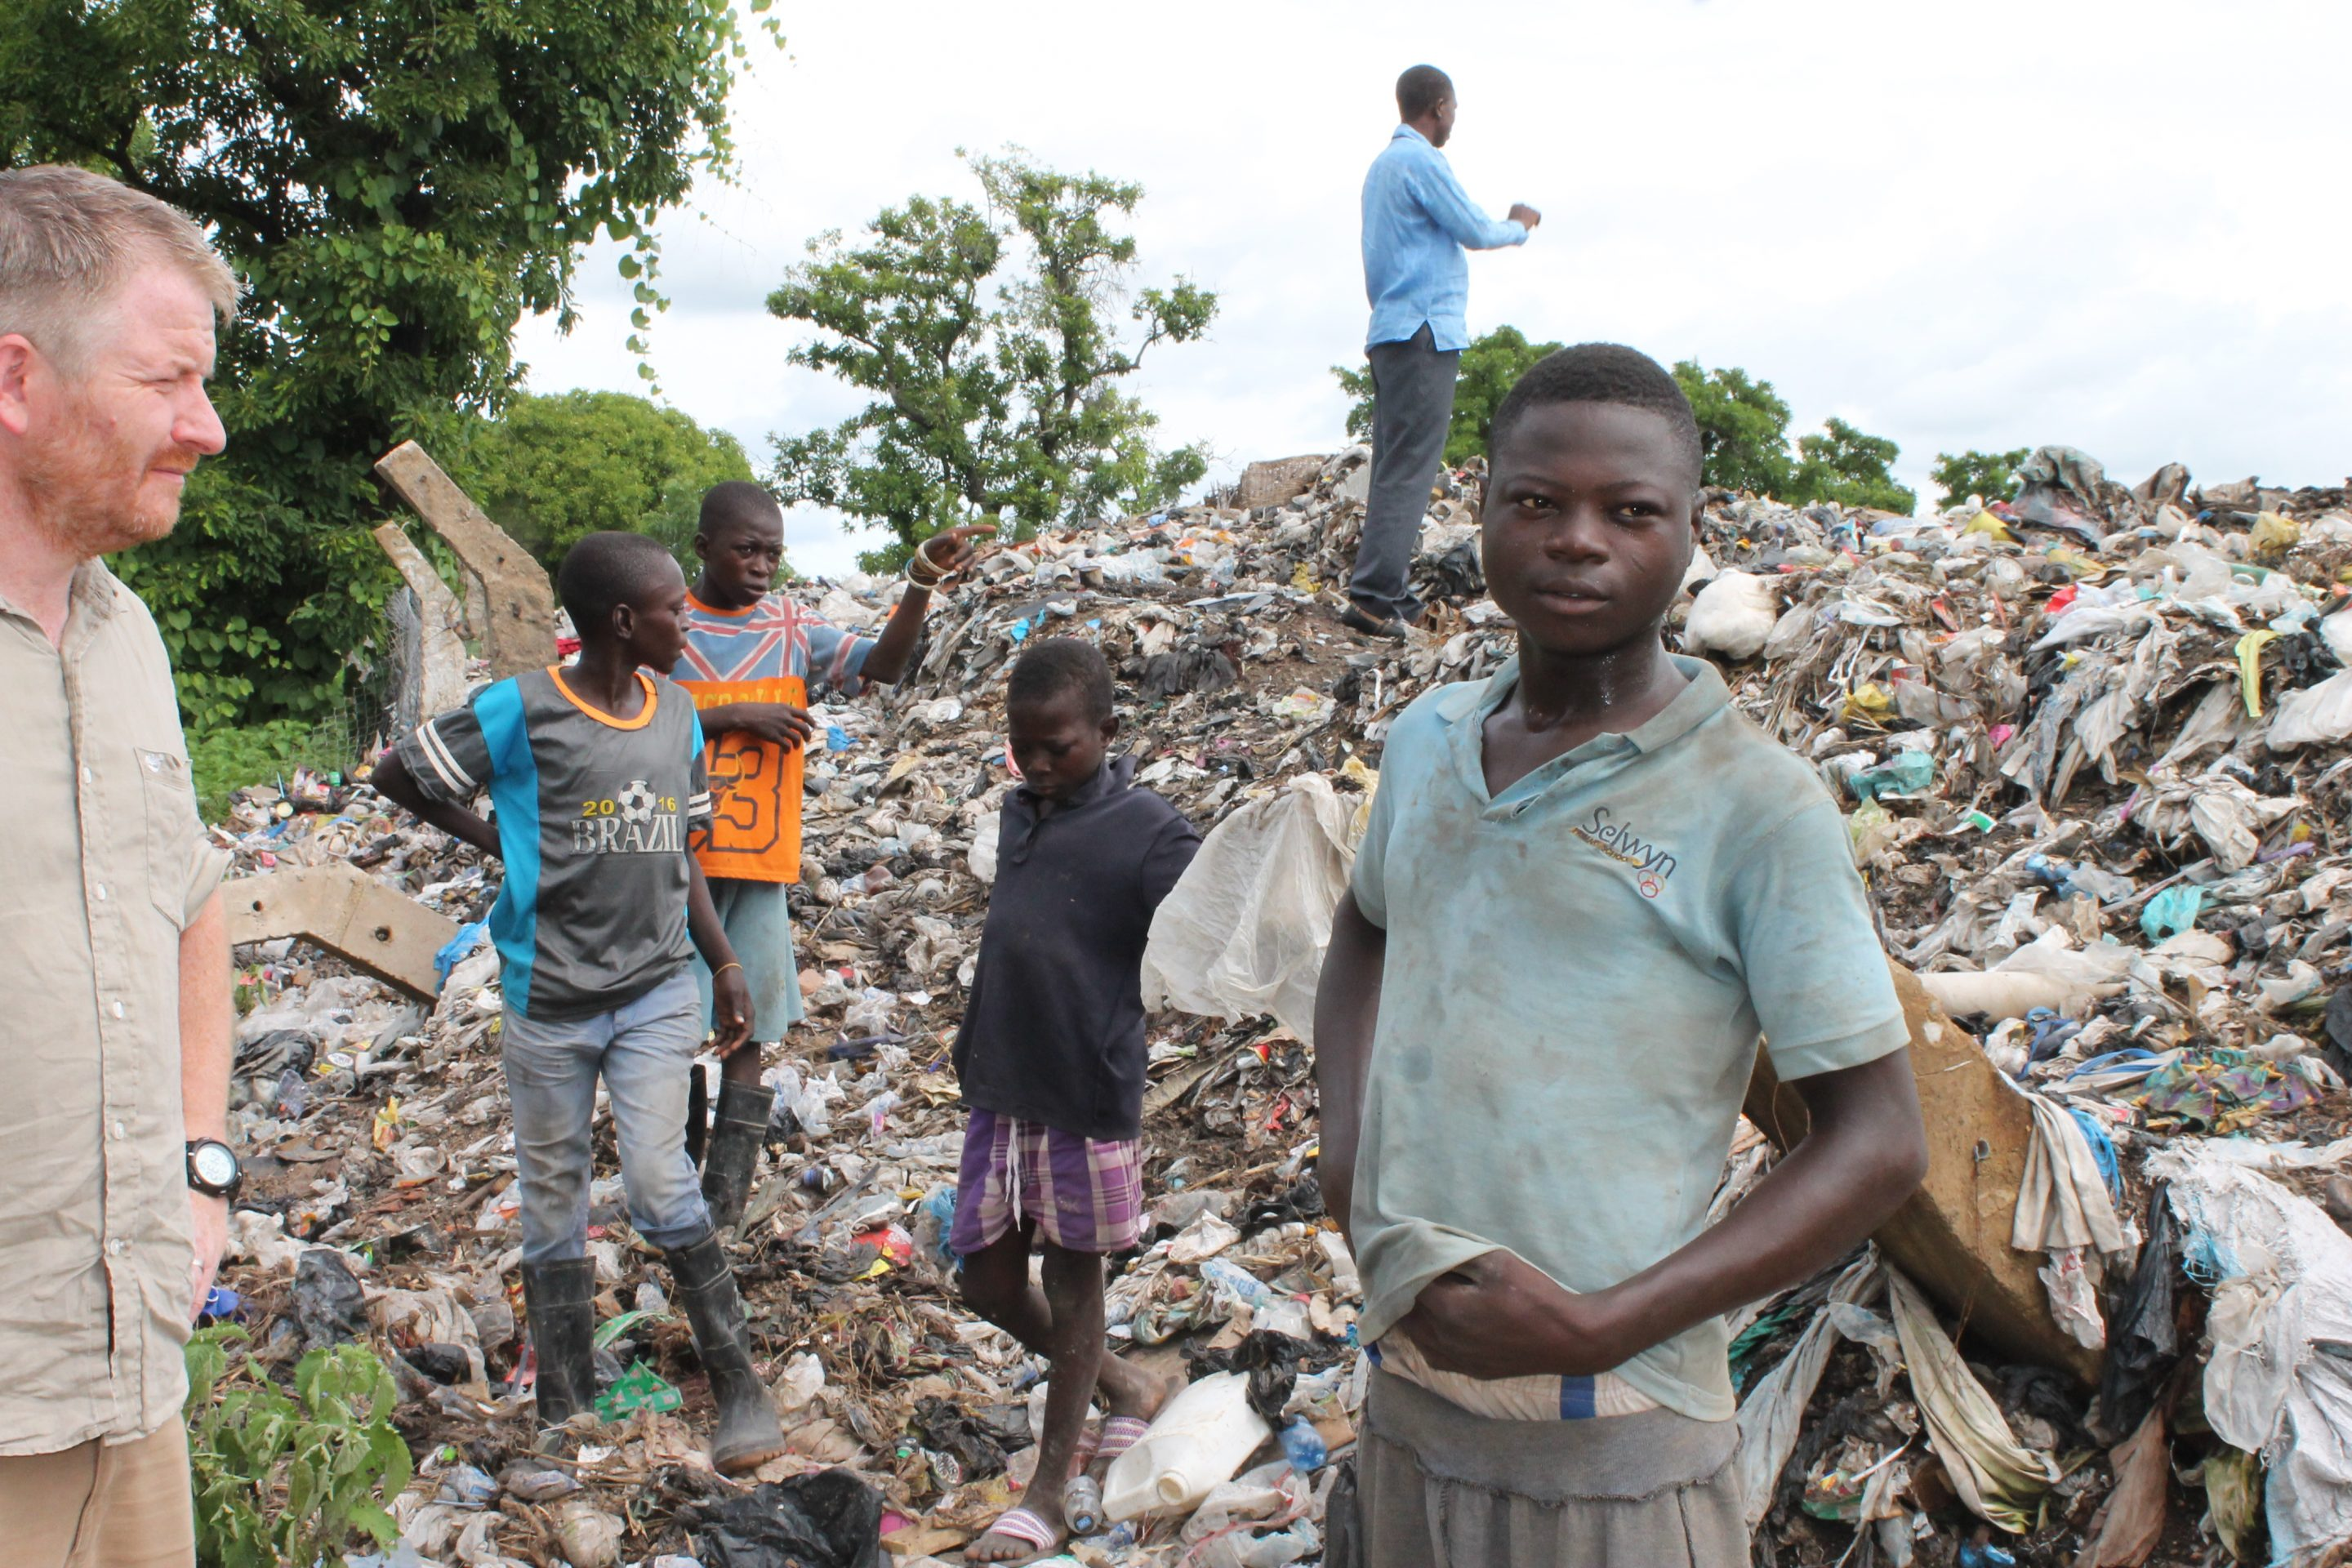 Local people pick through the waste for materials they can sell